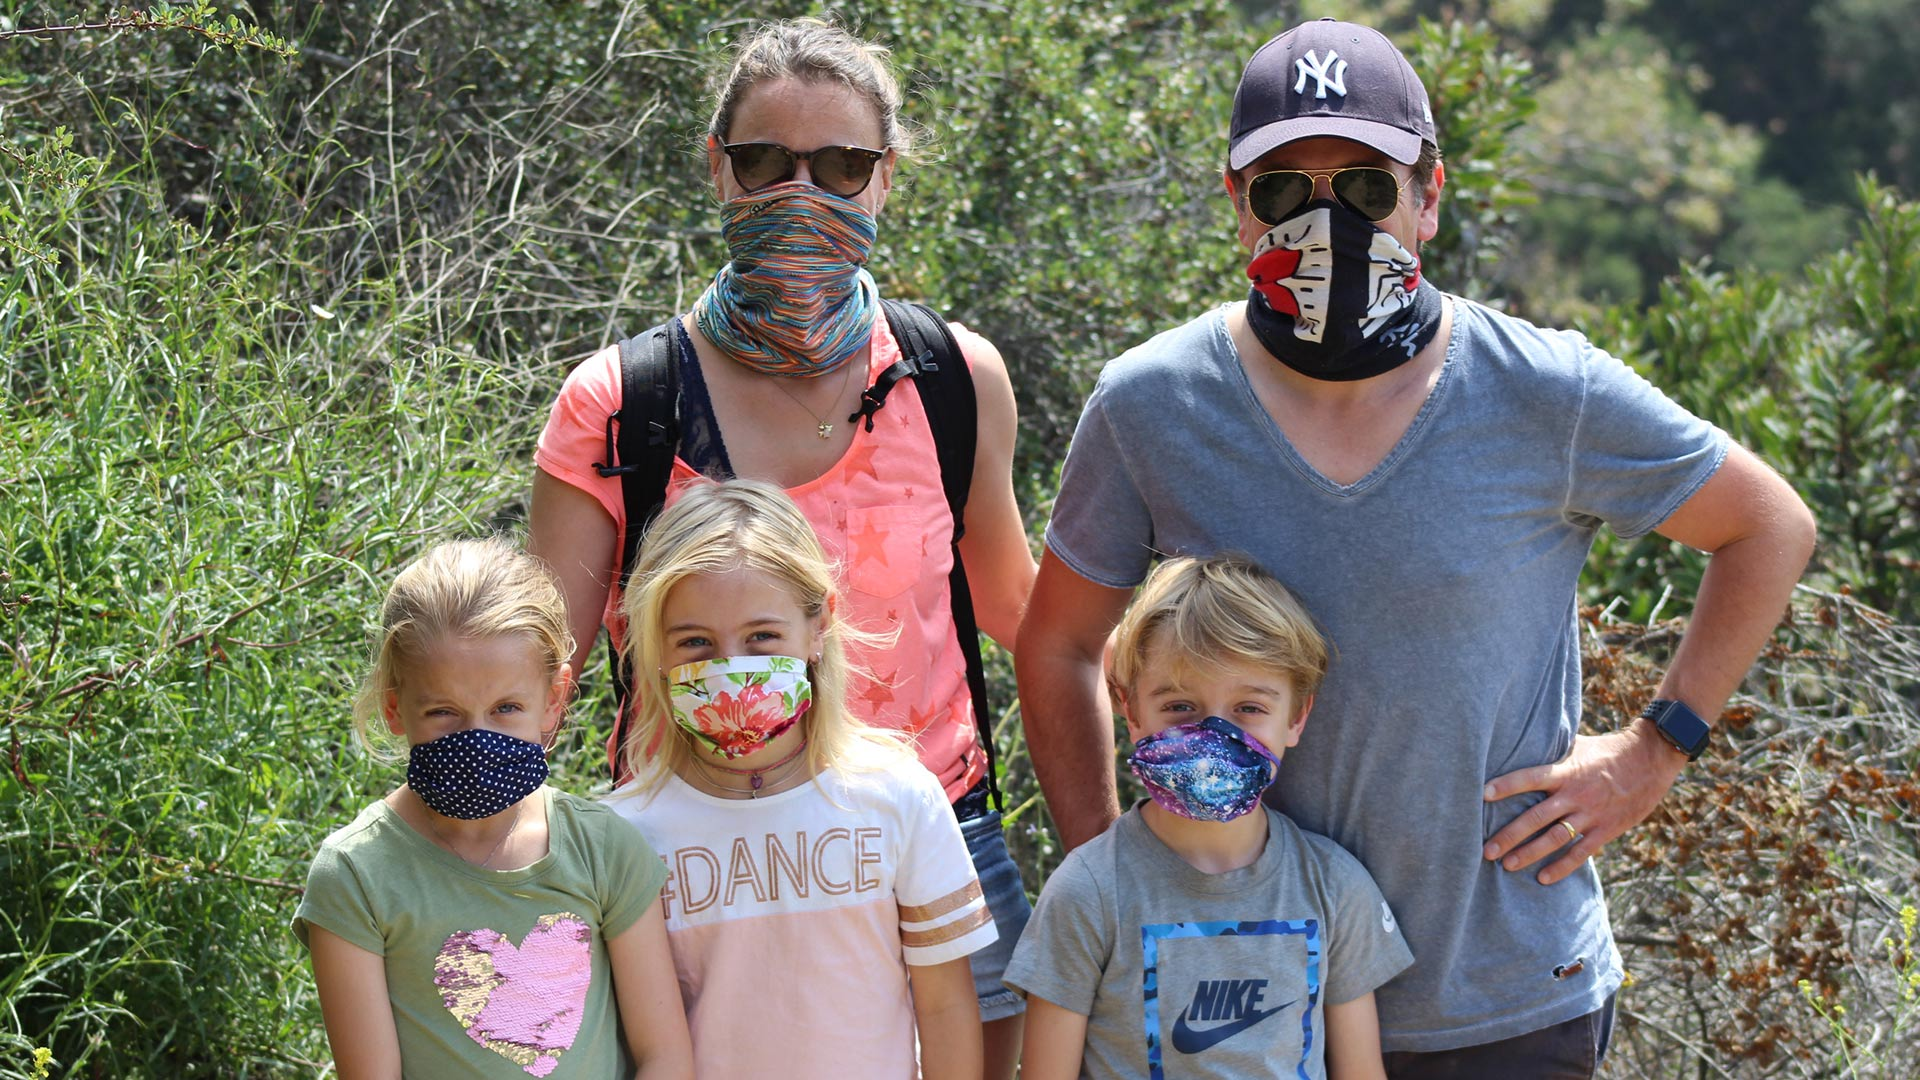 Maria and Christian Ditter with their three children on a hike in Temescal Canyon. | Karen Foshay